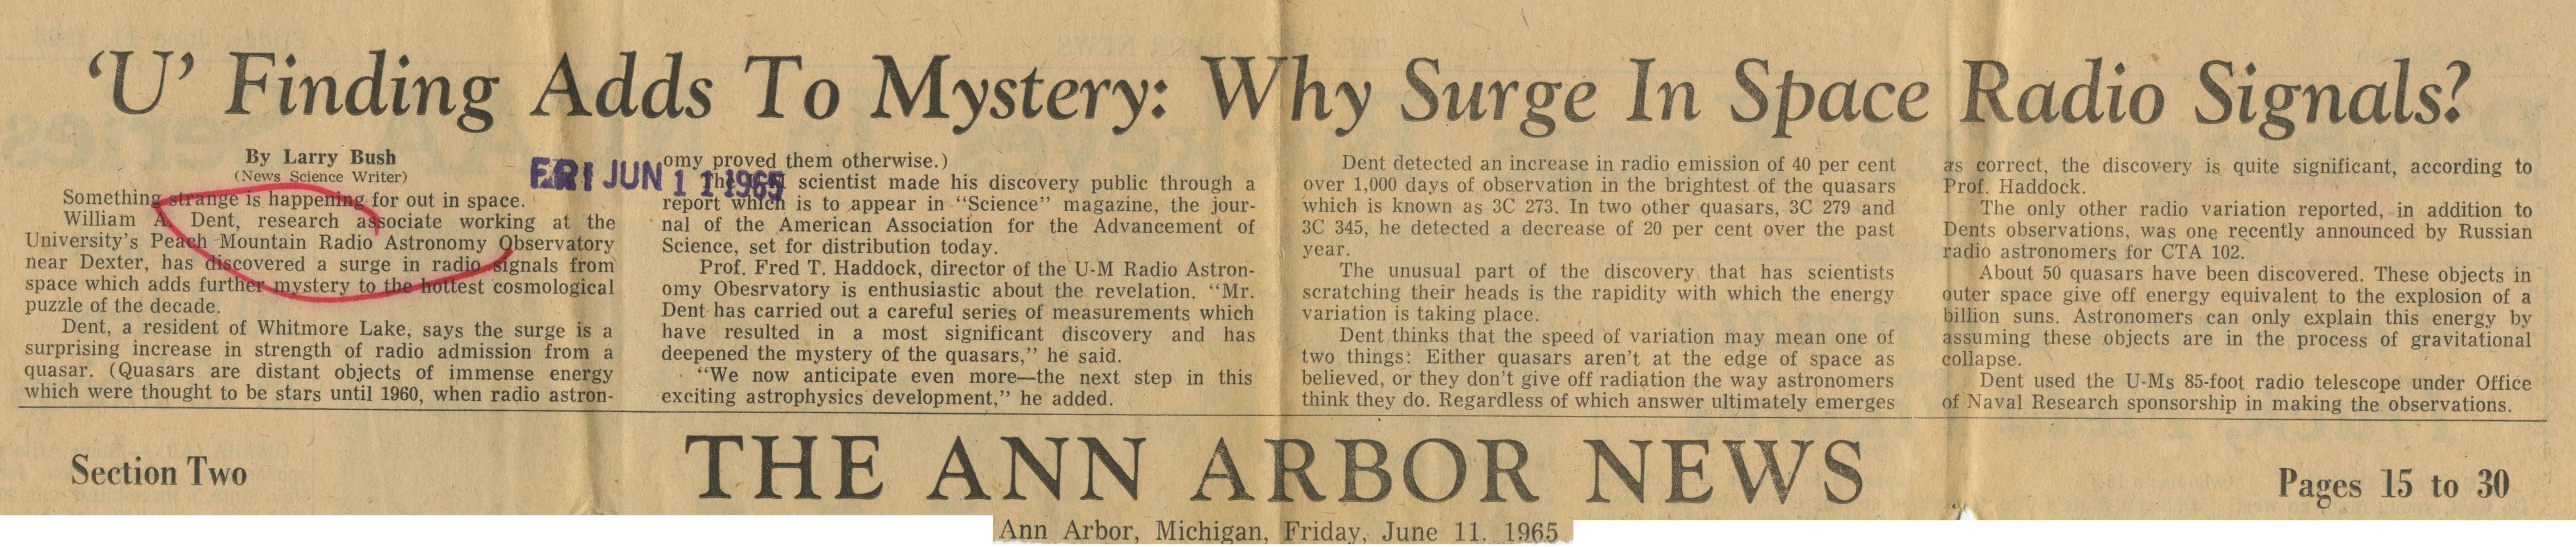 'U' Finding Adds To Mystery: Why Surge In Space Radio Signals? image